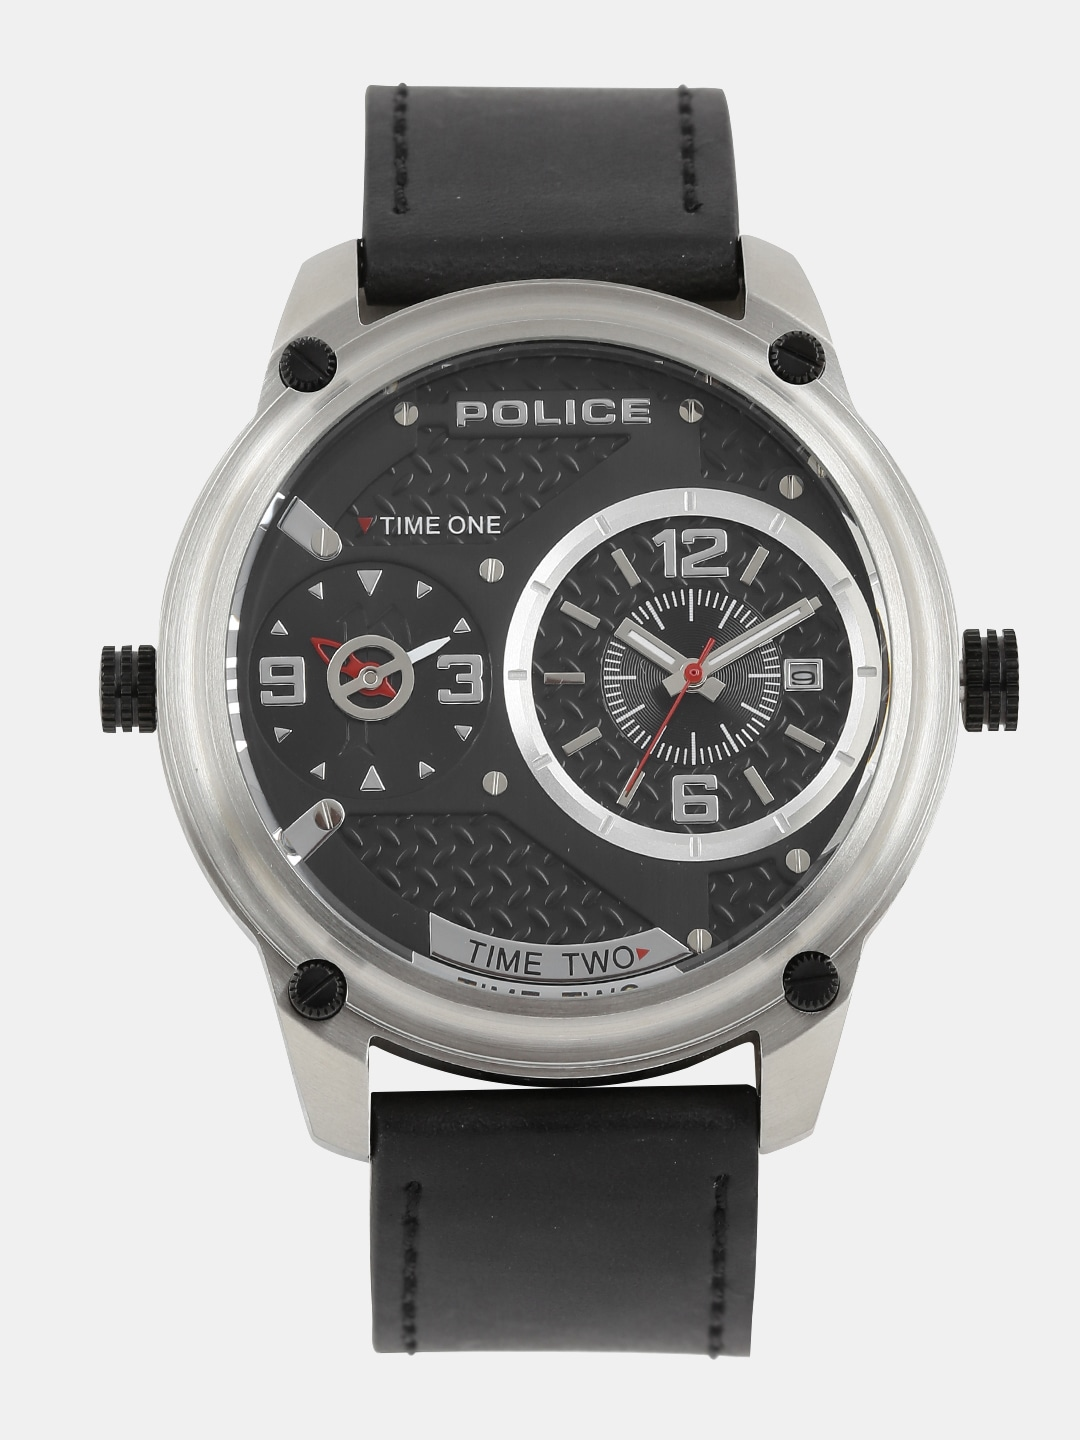 4694a2be2b5 Police Analogue Watches - Buy Police Analogue Watches online in India